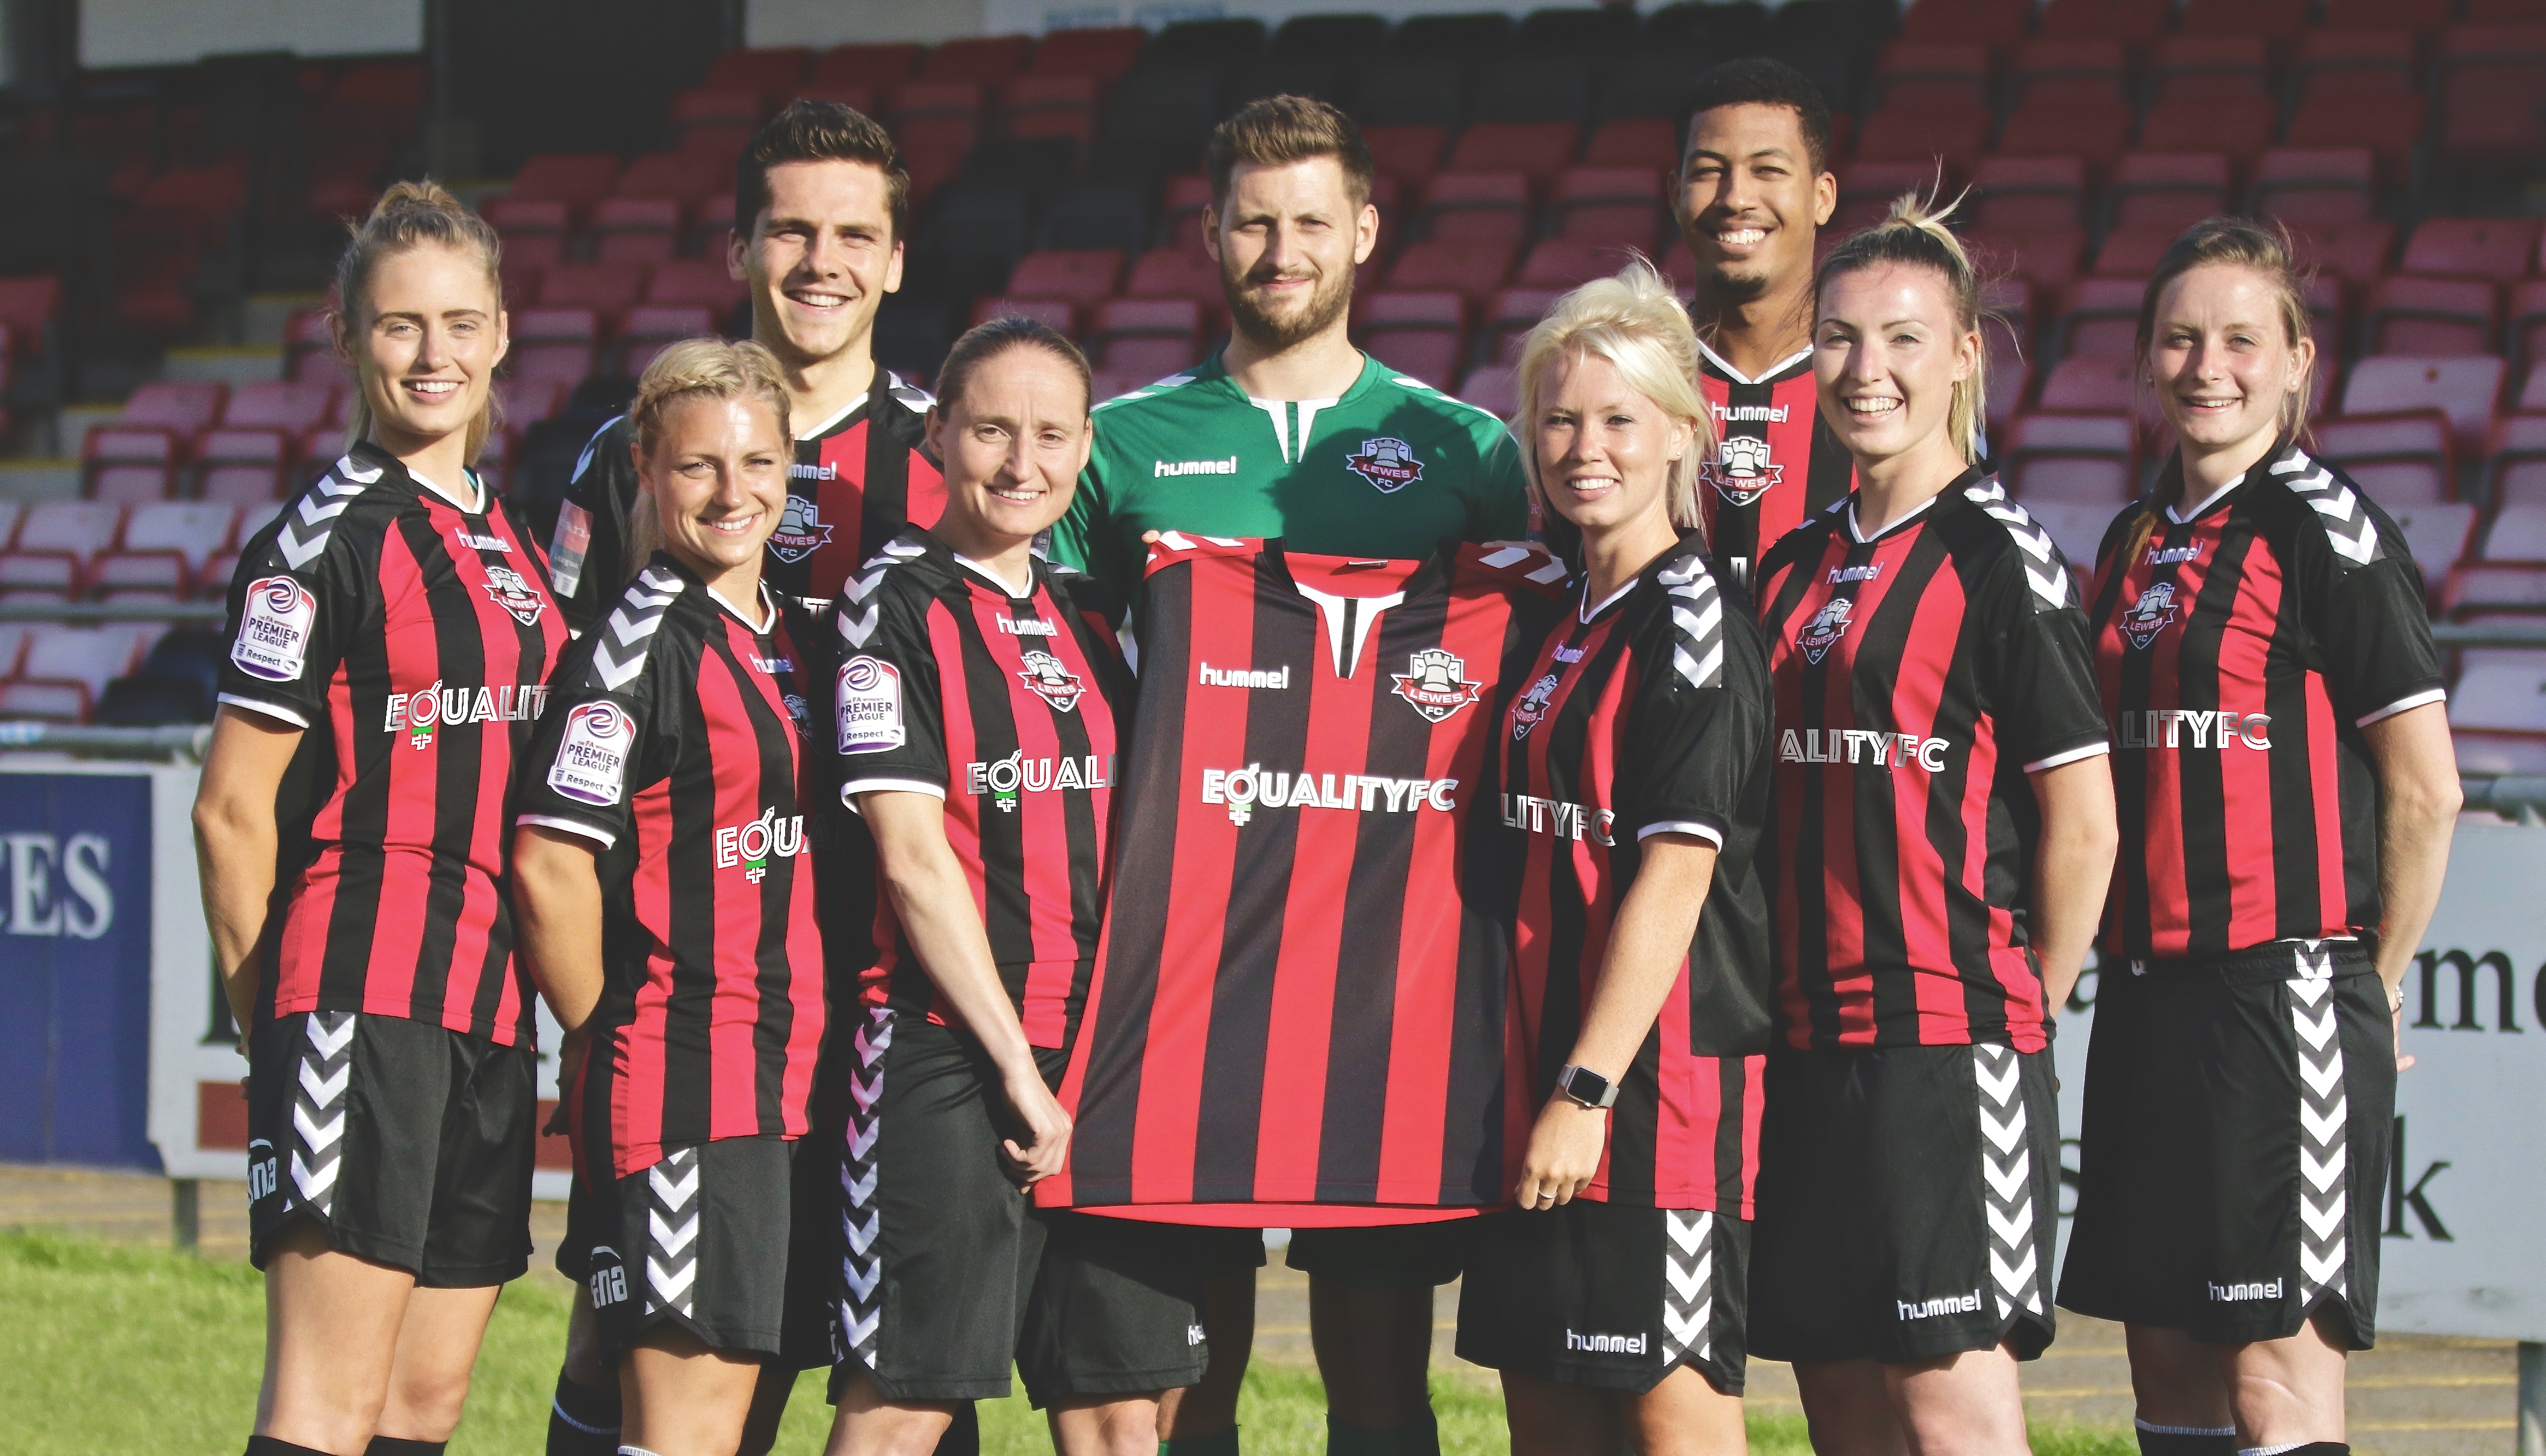 Lewes Football Club's men's and women's side pose with their home shirt.